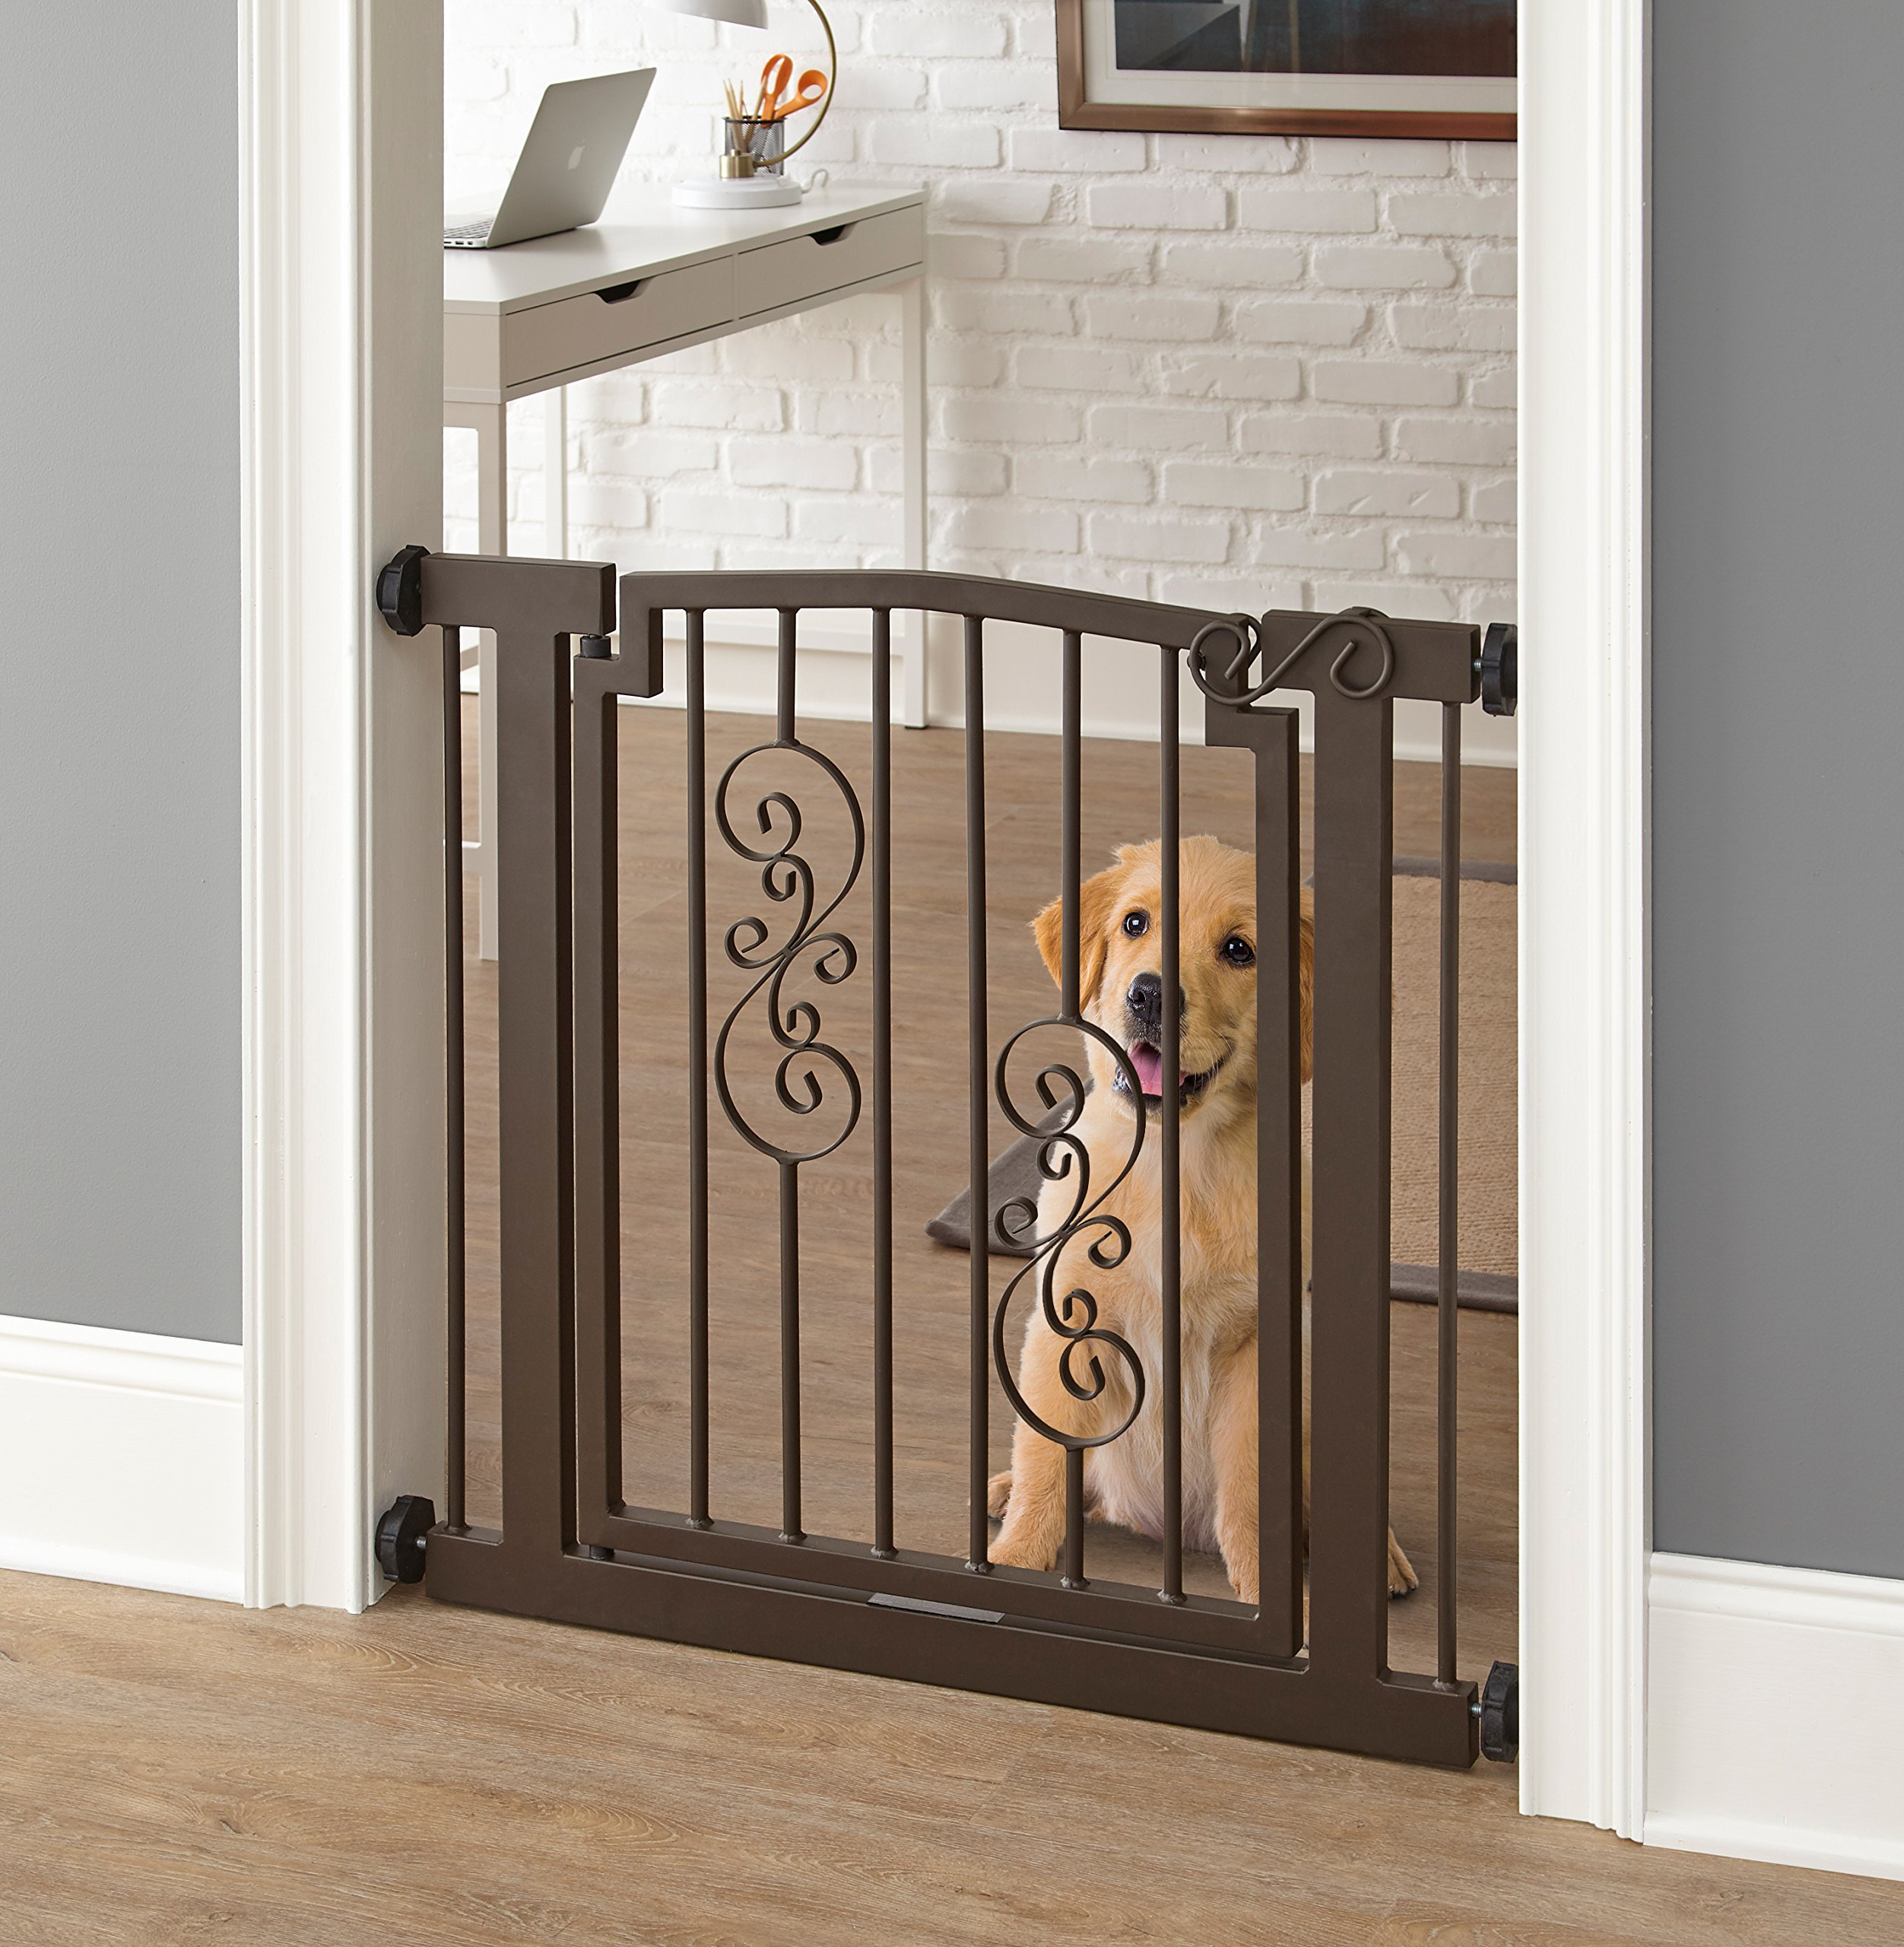 Noblesse Dog Gate - 32'' Tall - Expandable to 40 Inch - Black, Indoor Pet Barrier, Walk Through Swinging Door, Extra Wide. Pressure Mounted, Walls, Stairs, Small/Large Dogs, Metal, Best Dog Gate by NMN Products (Image #1)